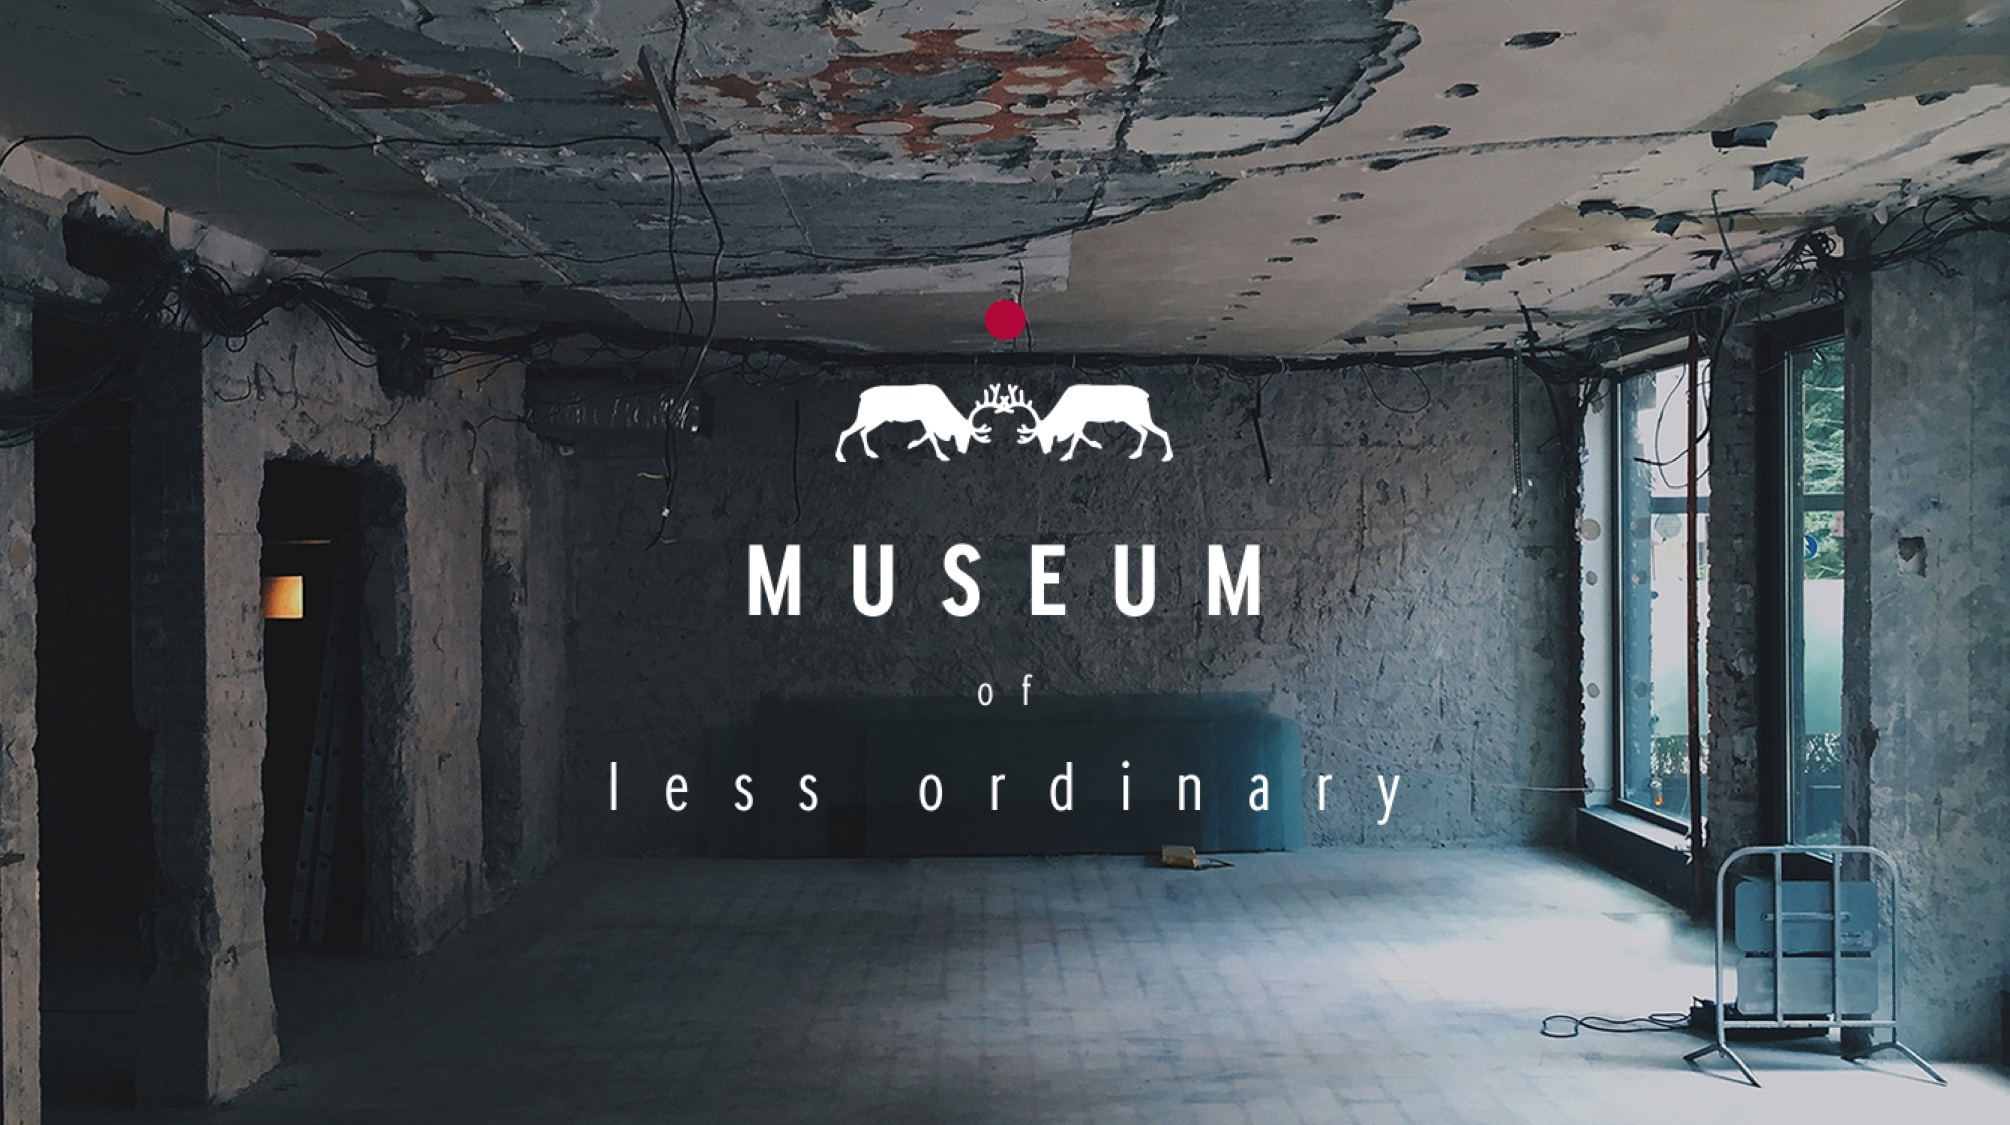 Finlandia: Museum of Less Ordinary